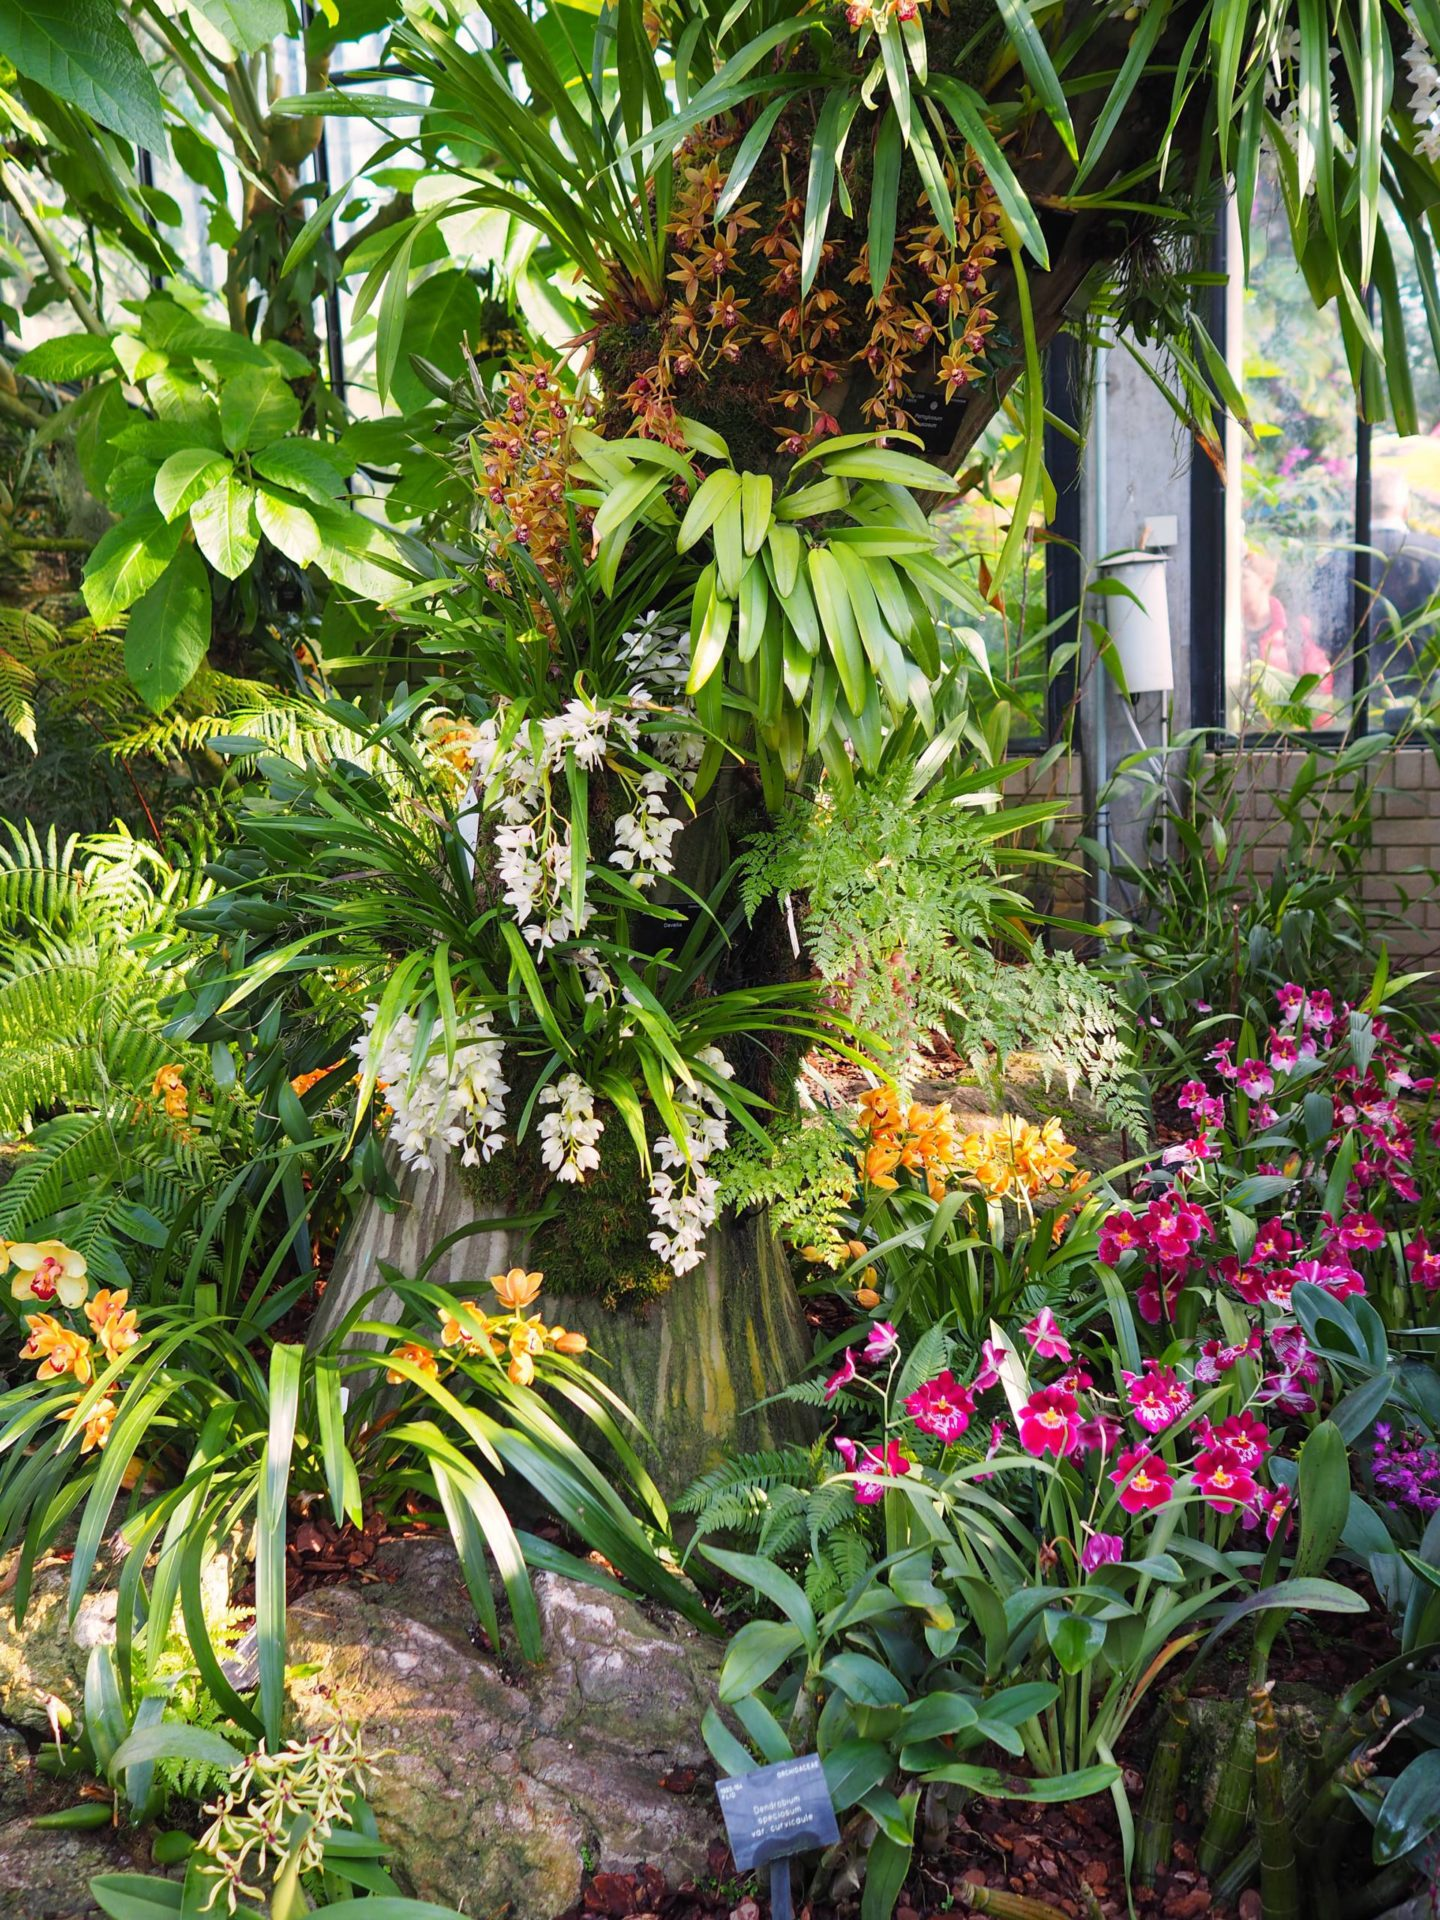 Beautiful british gardens visiting kew gardens london the orchid england travel inspiration beautiful british gardens visiting kew gardens london the orchid sisterspd